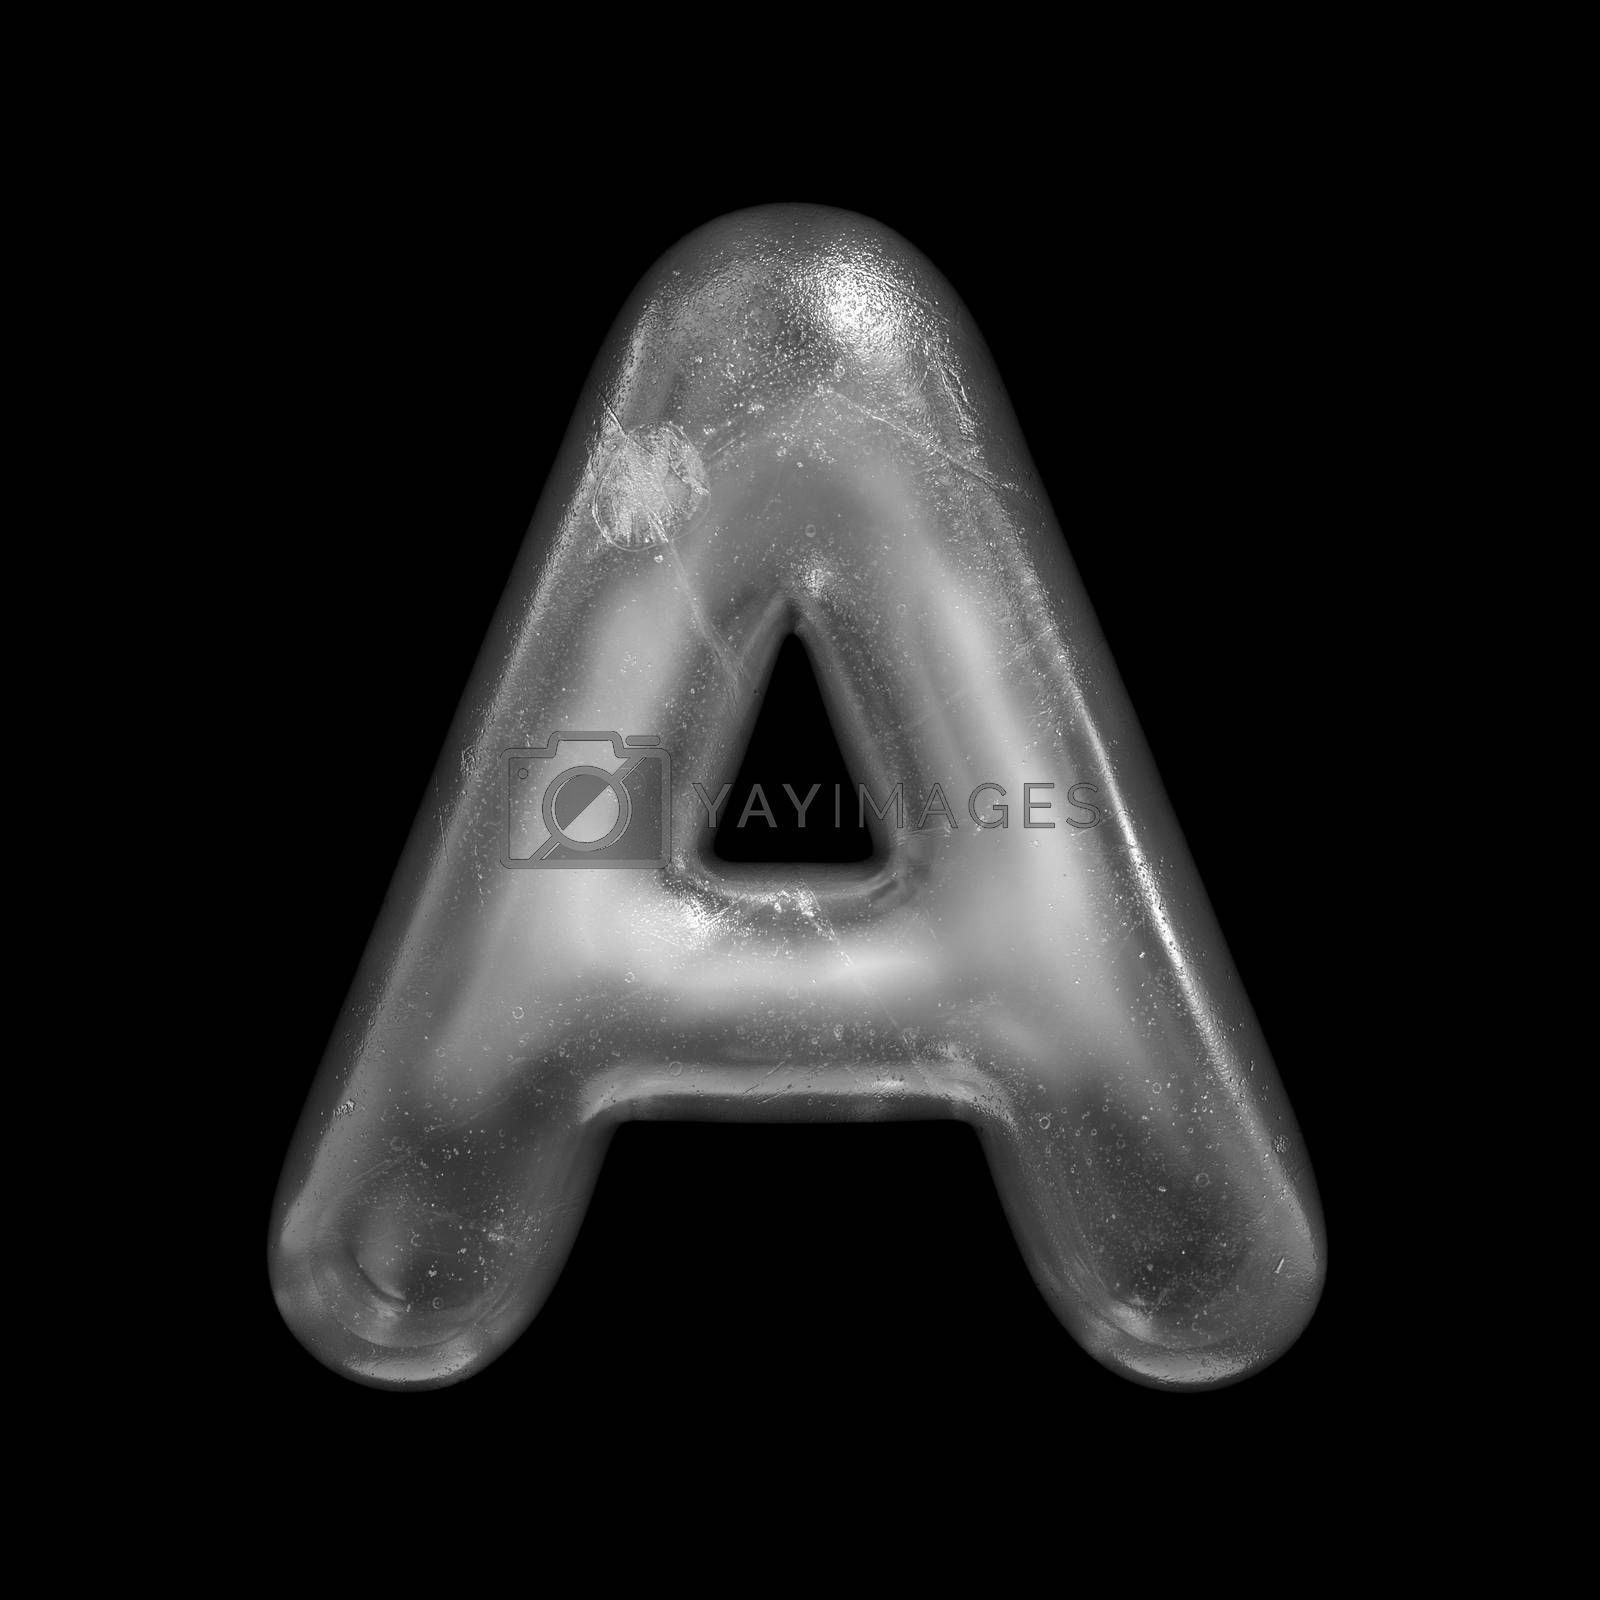 Ice letter A - Capital 3d Winter font - suitable for Nature, Winter or Christmas related subjects by chrisroll